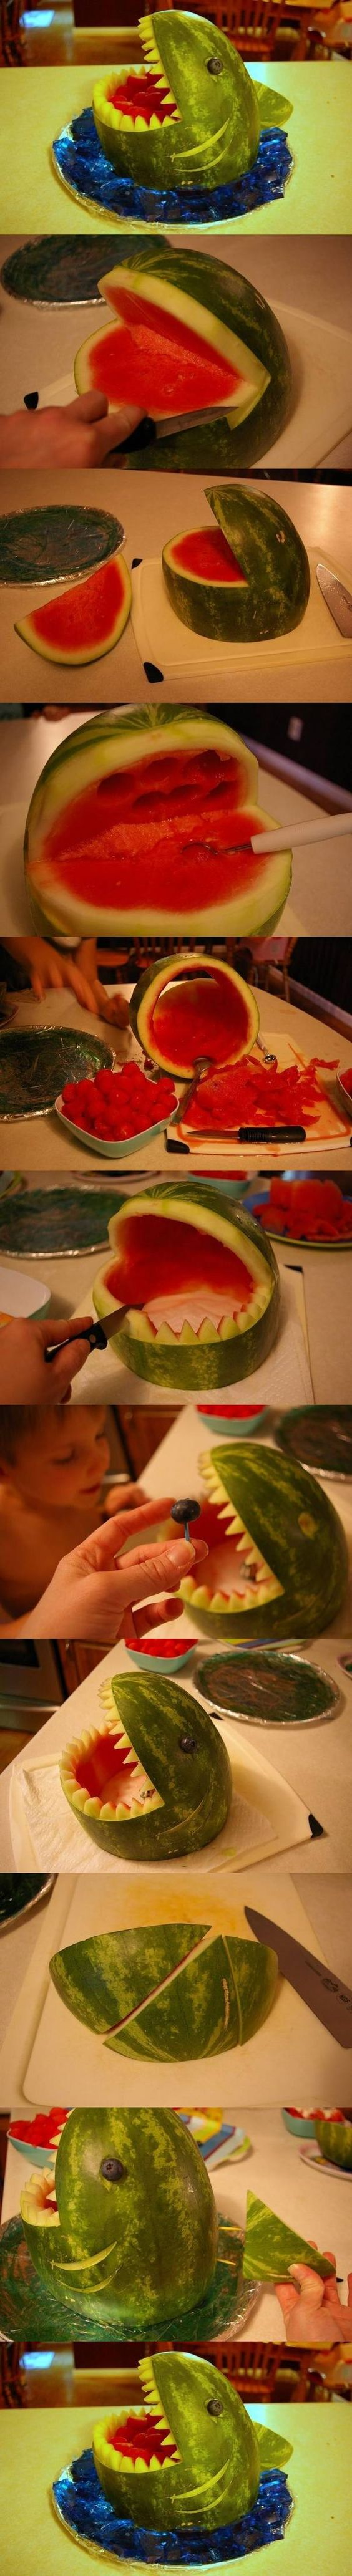 diy watermelon shark food party pinterest wassermelone essen und geburtstag. Black Bedroom Furniture Sets. Home Design Ideas